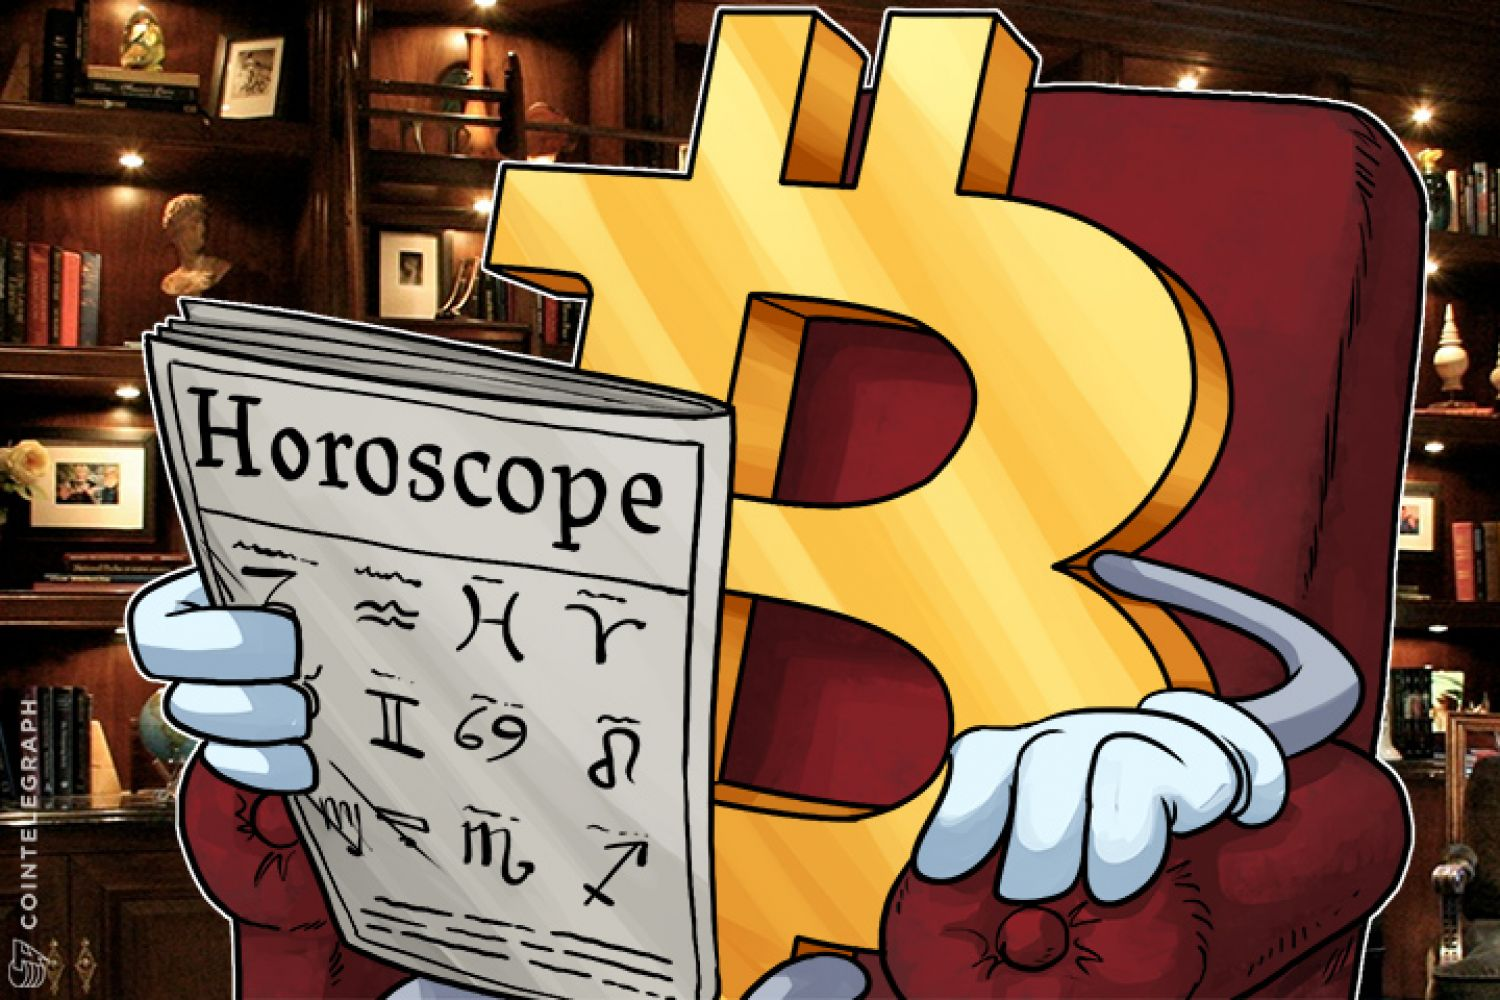 Bitcoin in an armchair reading horoscopes